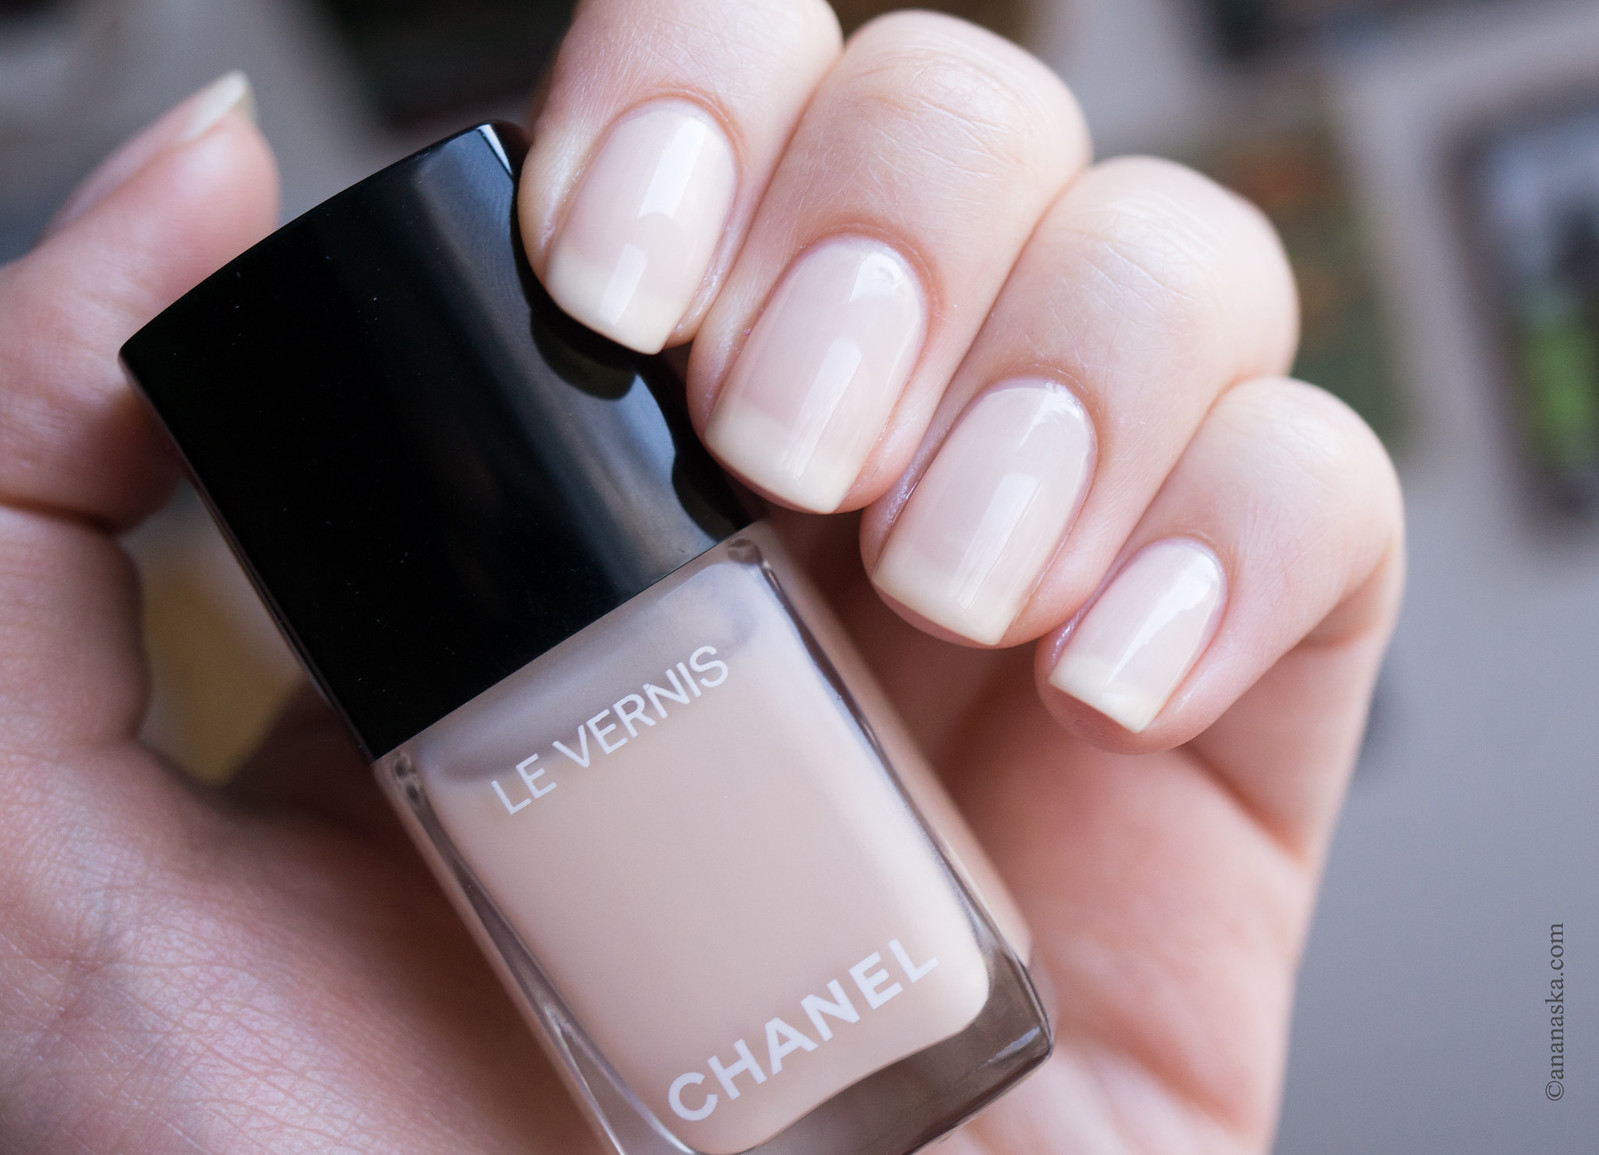 Chanel Le Vernis Longue Tenue 548 Blanc White